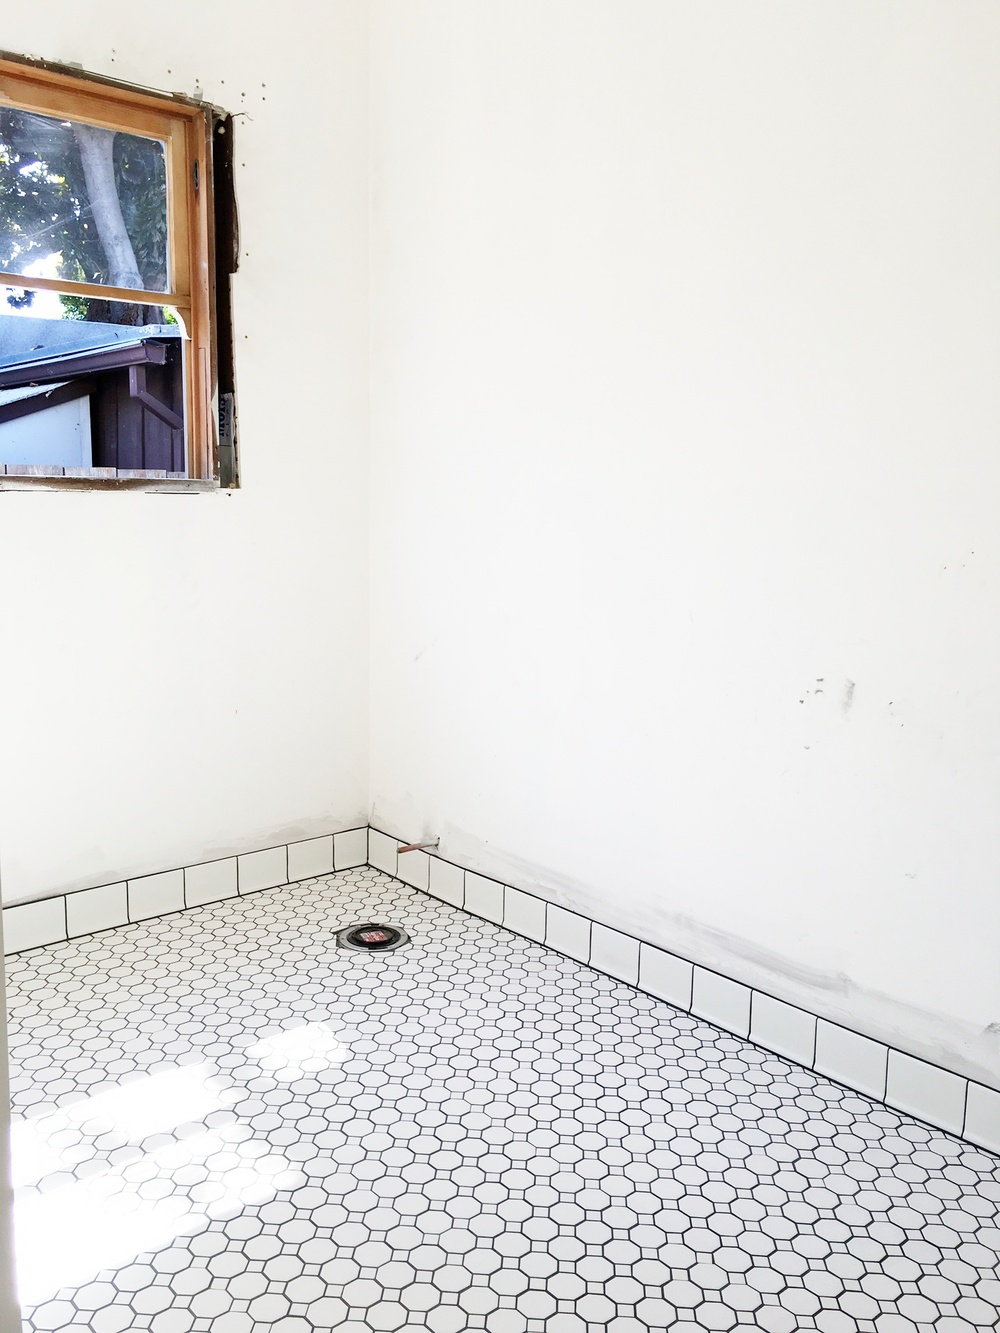 The floor tile is in. We chose a white hexagonal pattern with very dark gray grout. Lookin' good! Next: Installing the vanity and my fun job of restoring the claw foot tub. Ugh.